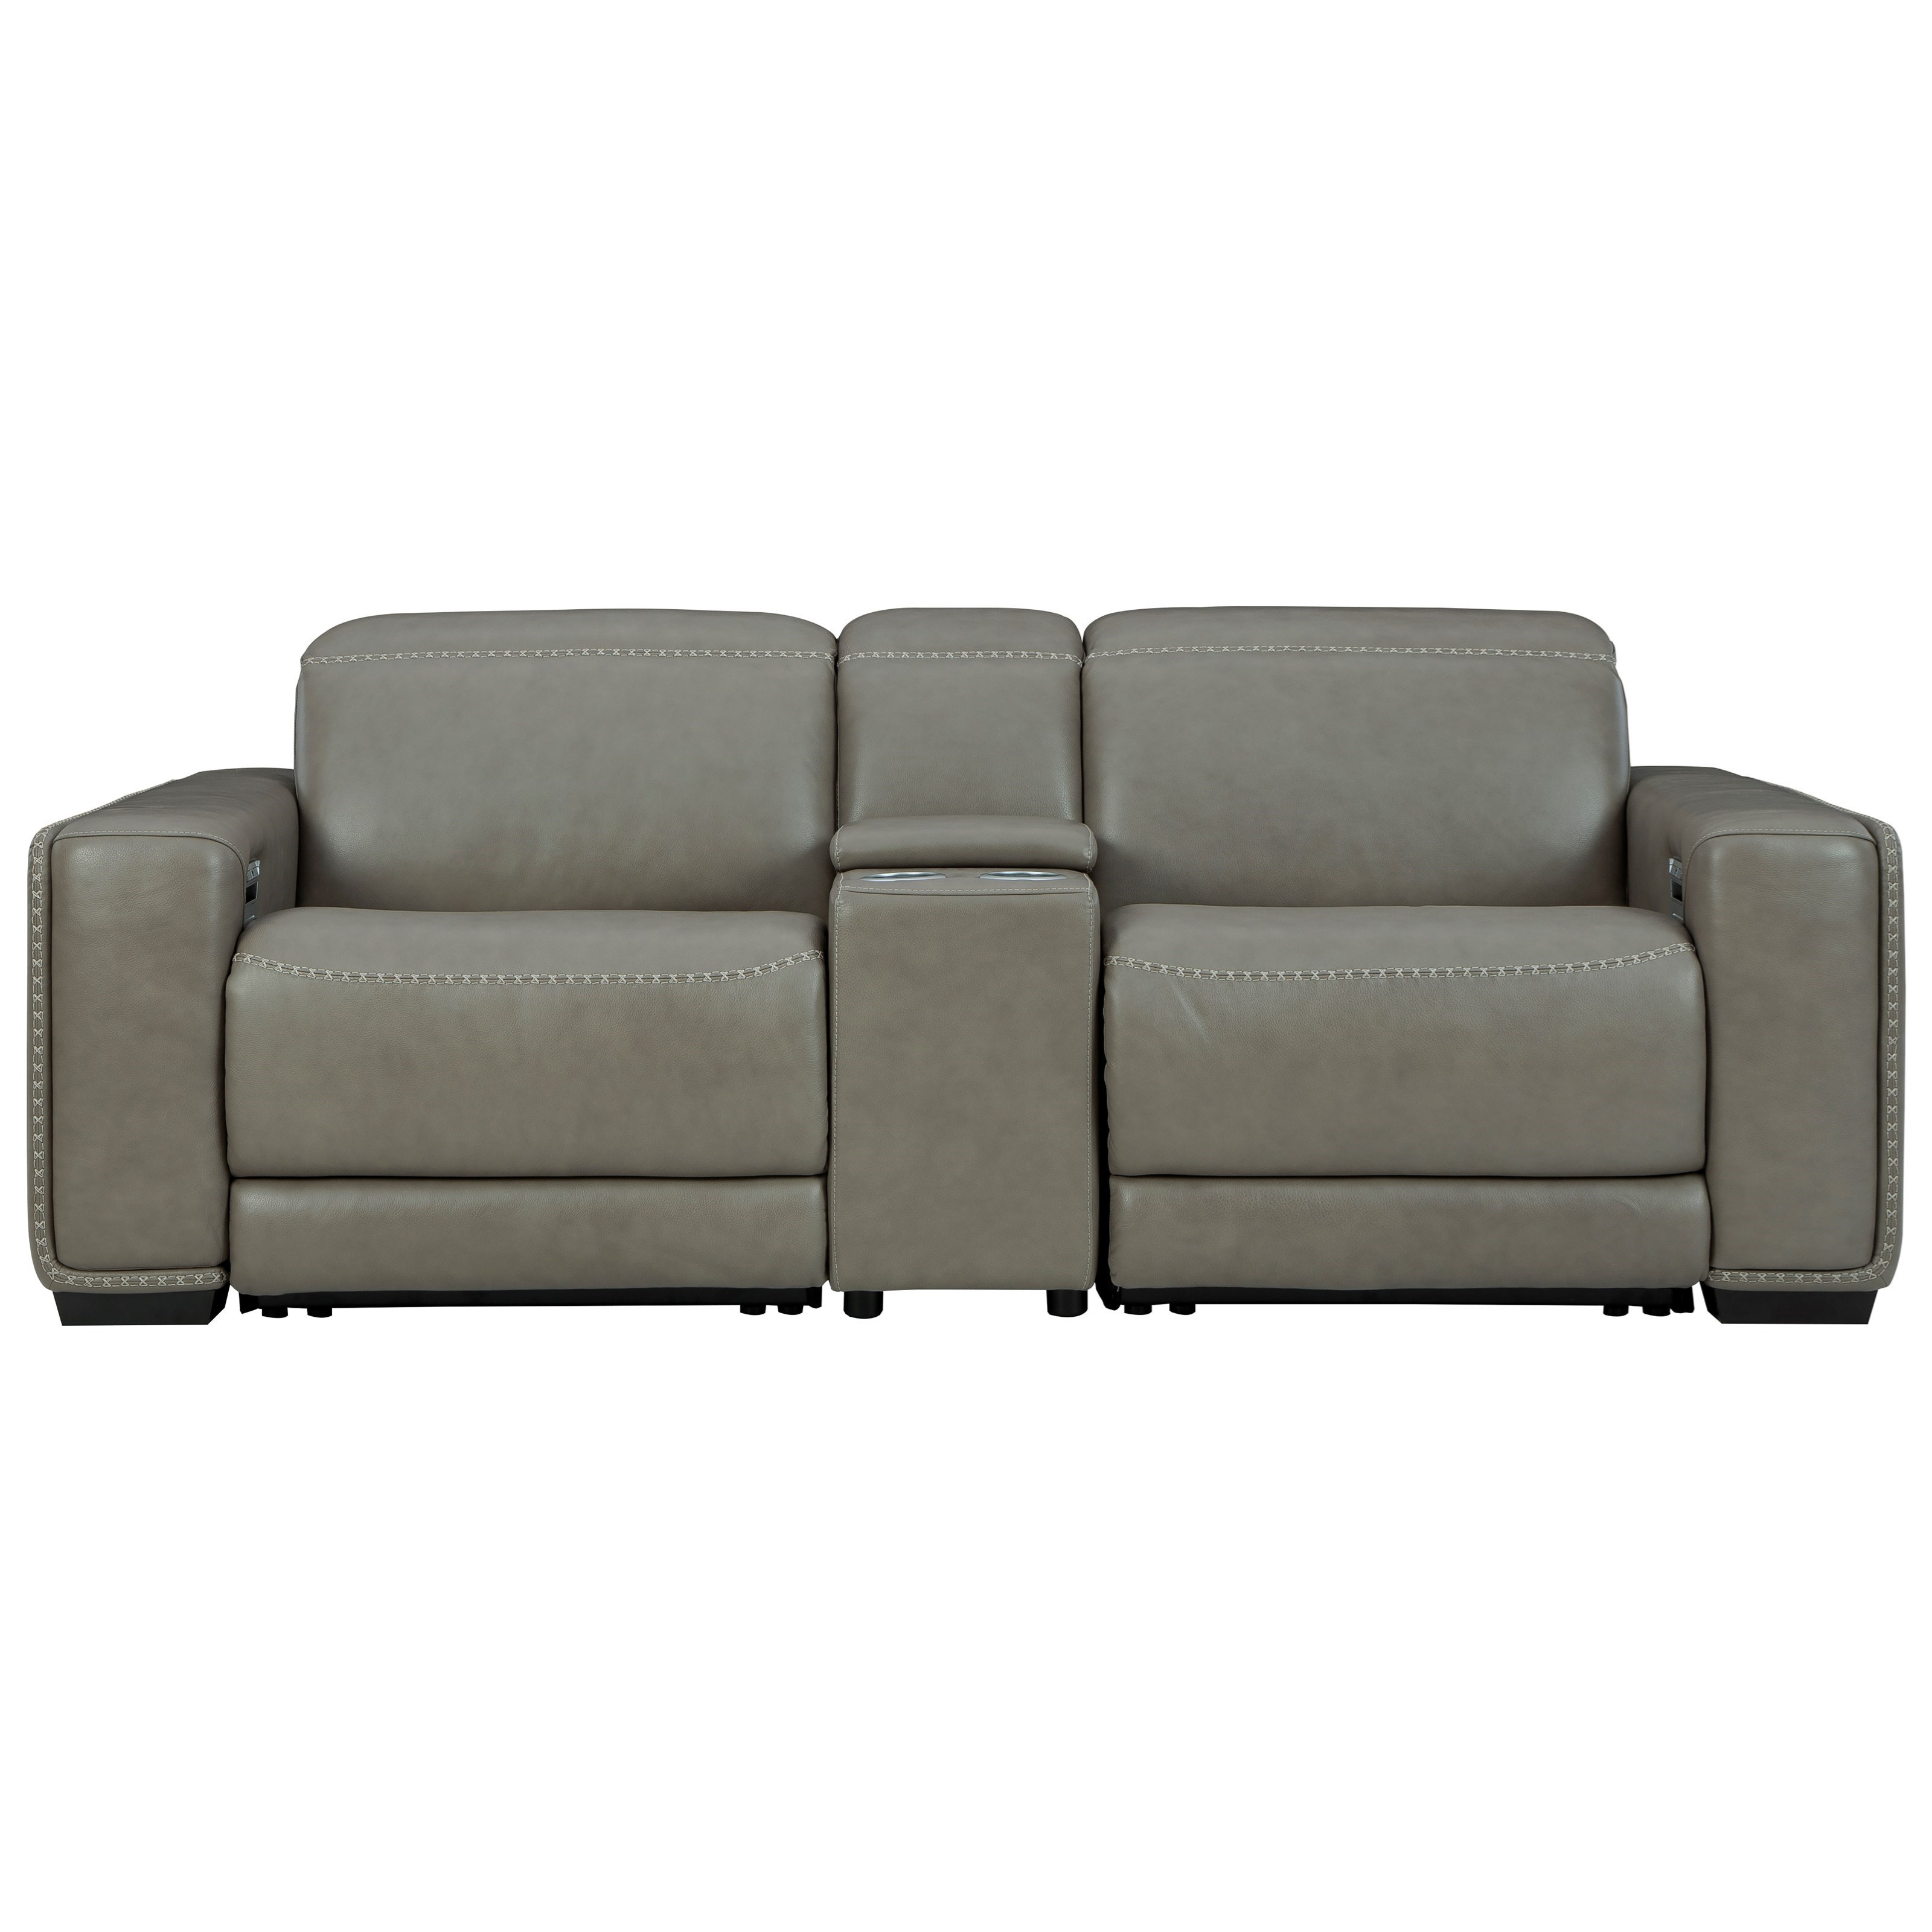 Correze Power Reclining Loveseat w/Console by Signature Design by Ashley at HomeWorld Furniture